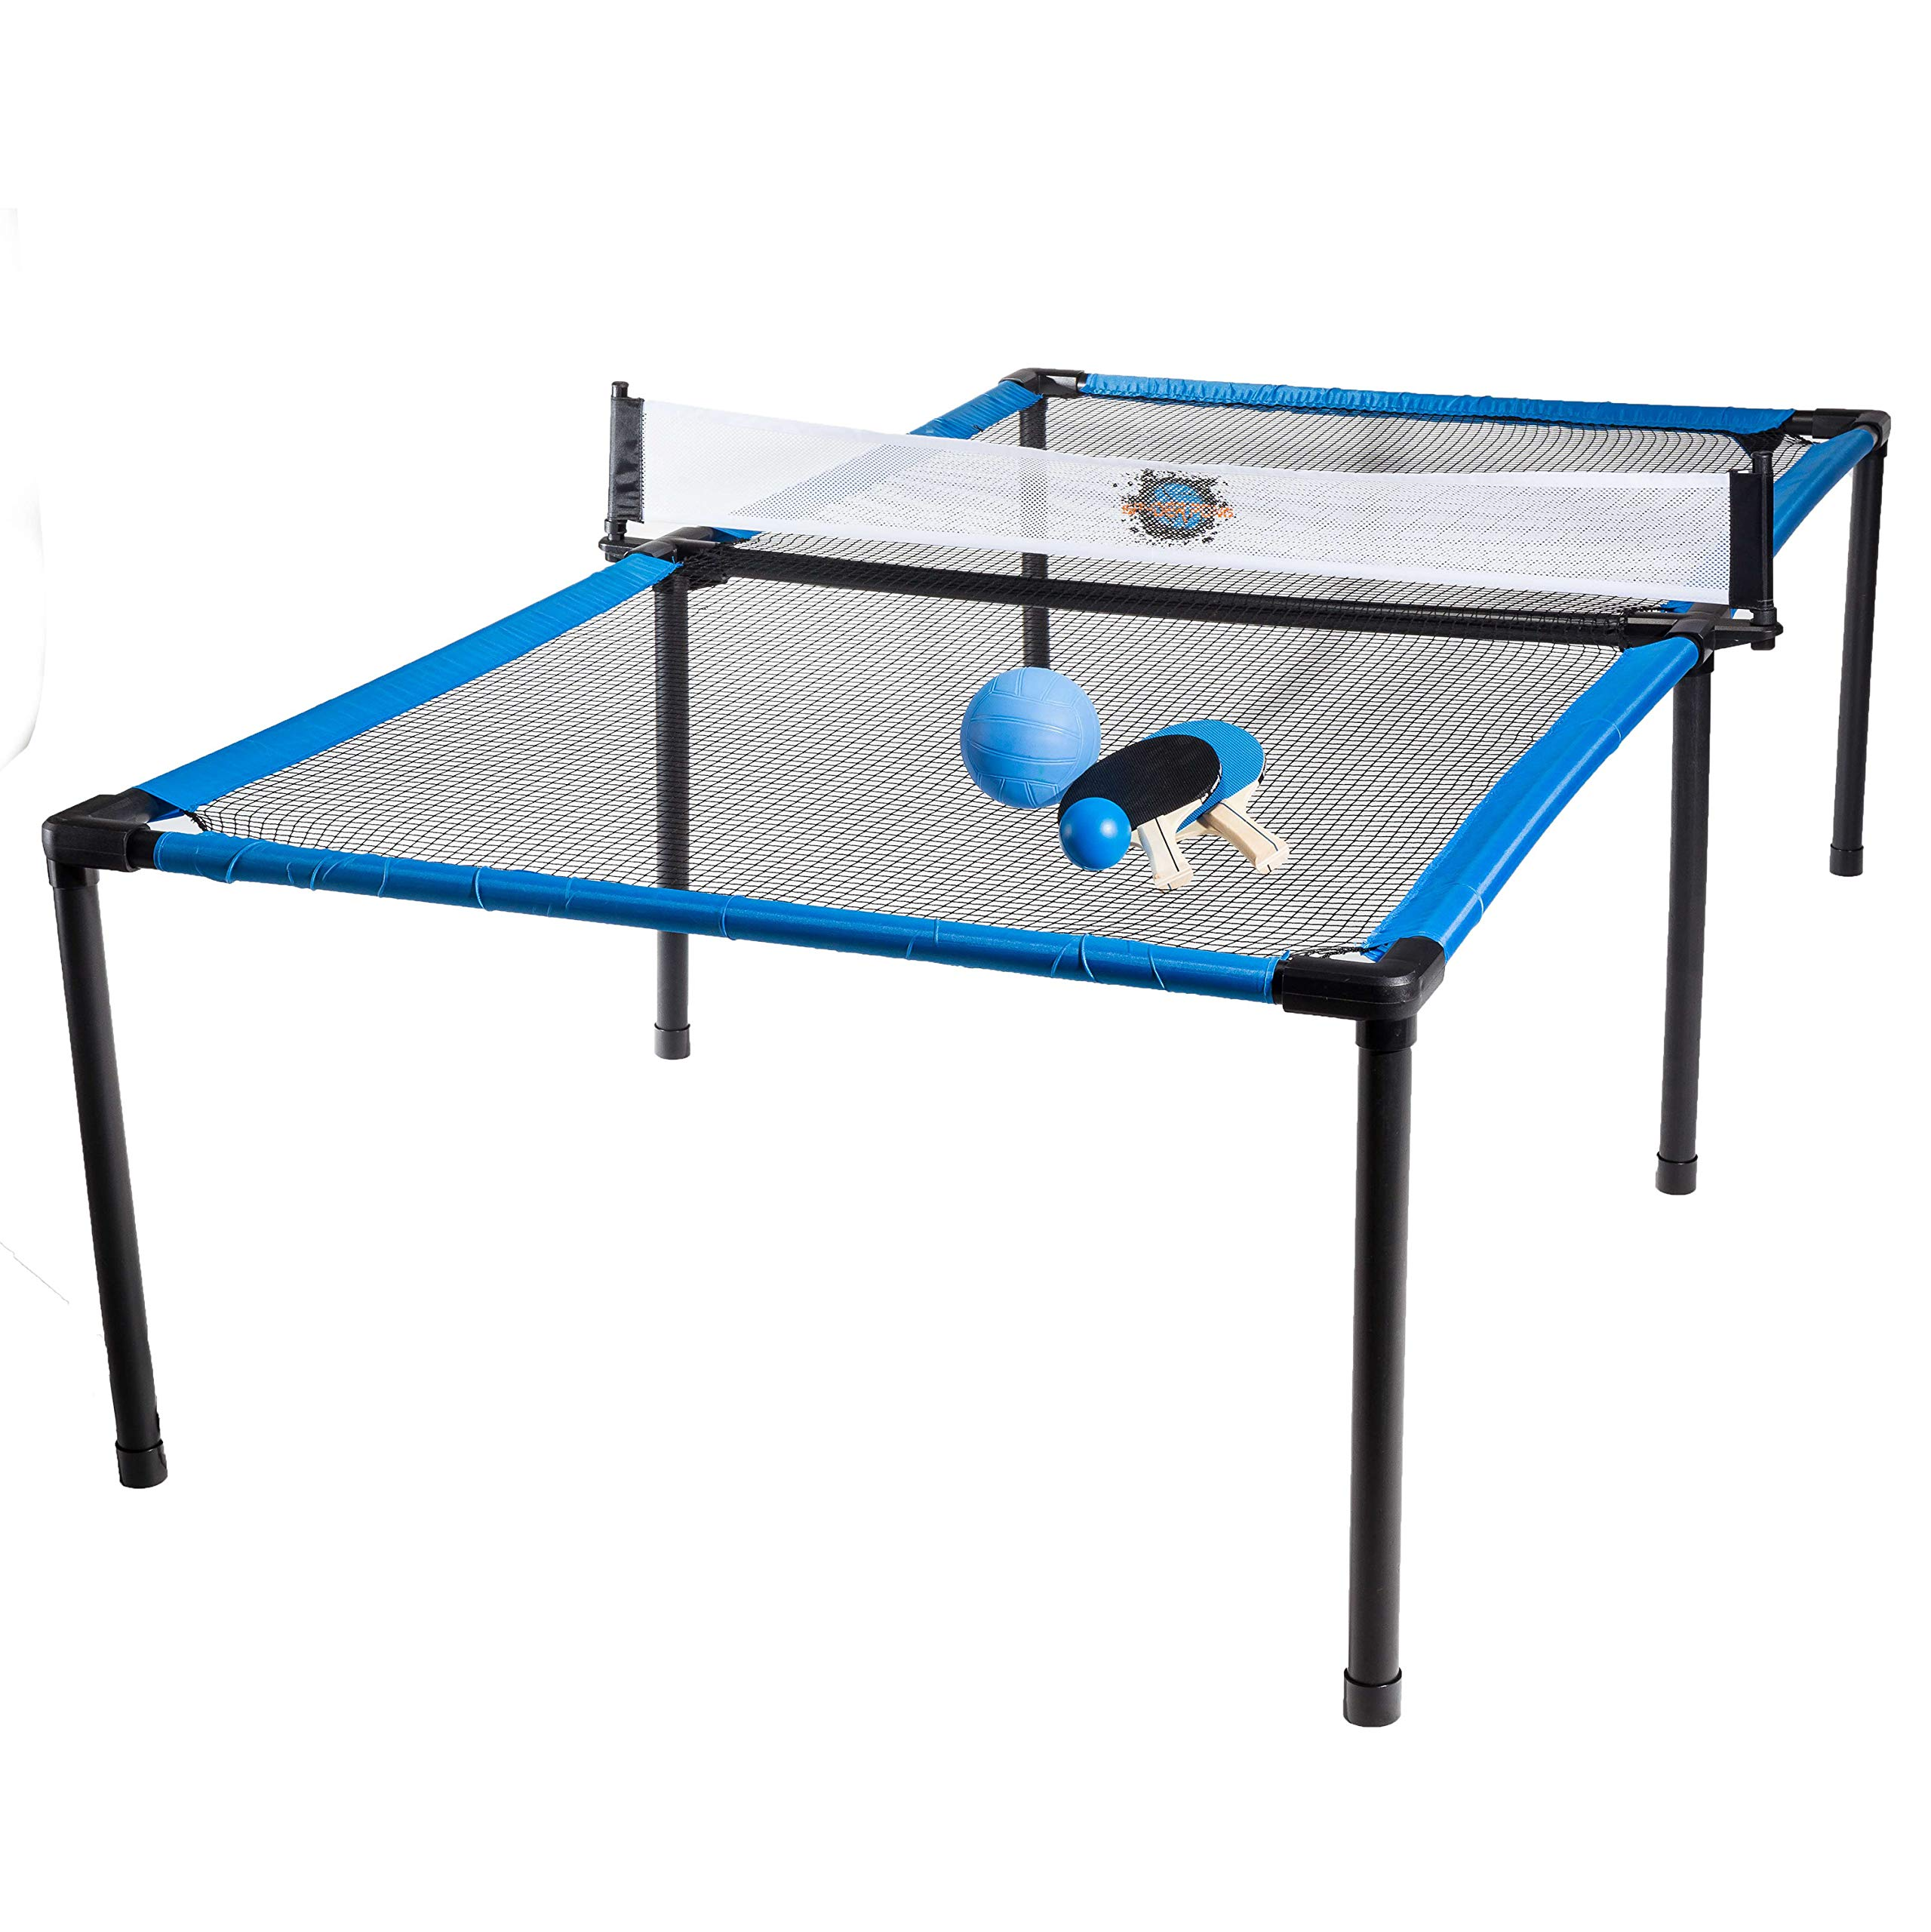 Franklin Sports SypderPong Tennis - Table Tennis, Volleyball and 4-Square Outdoor Game - Indoor or Outdoor Game for Kids - Includes Net, Table, Paddles and Ball by Franklin Sports